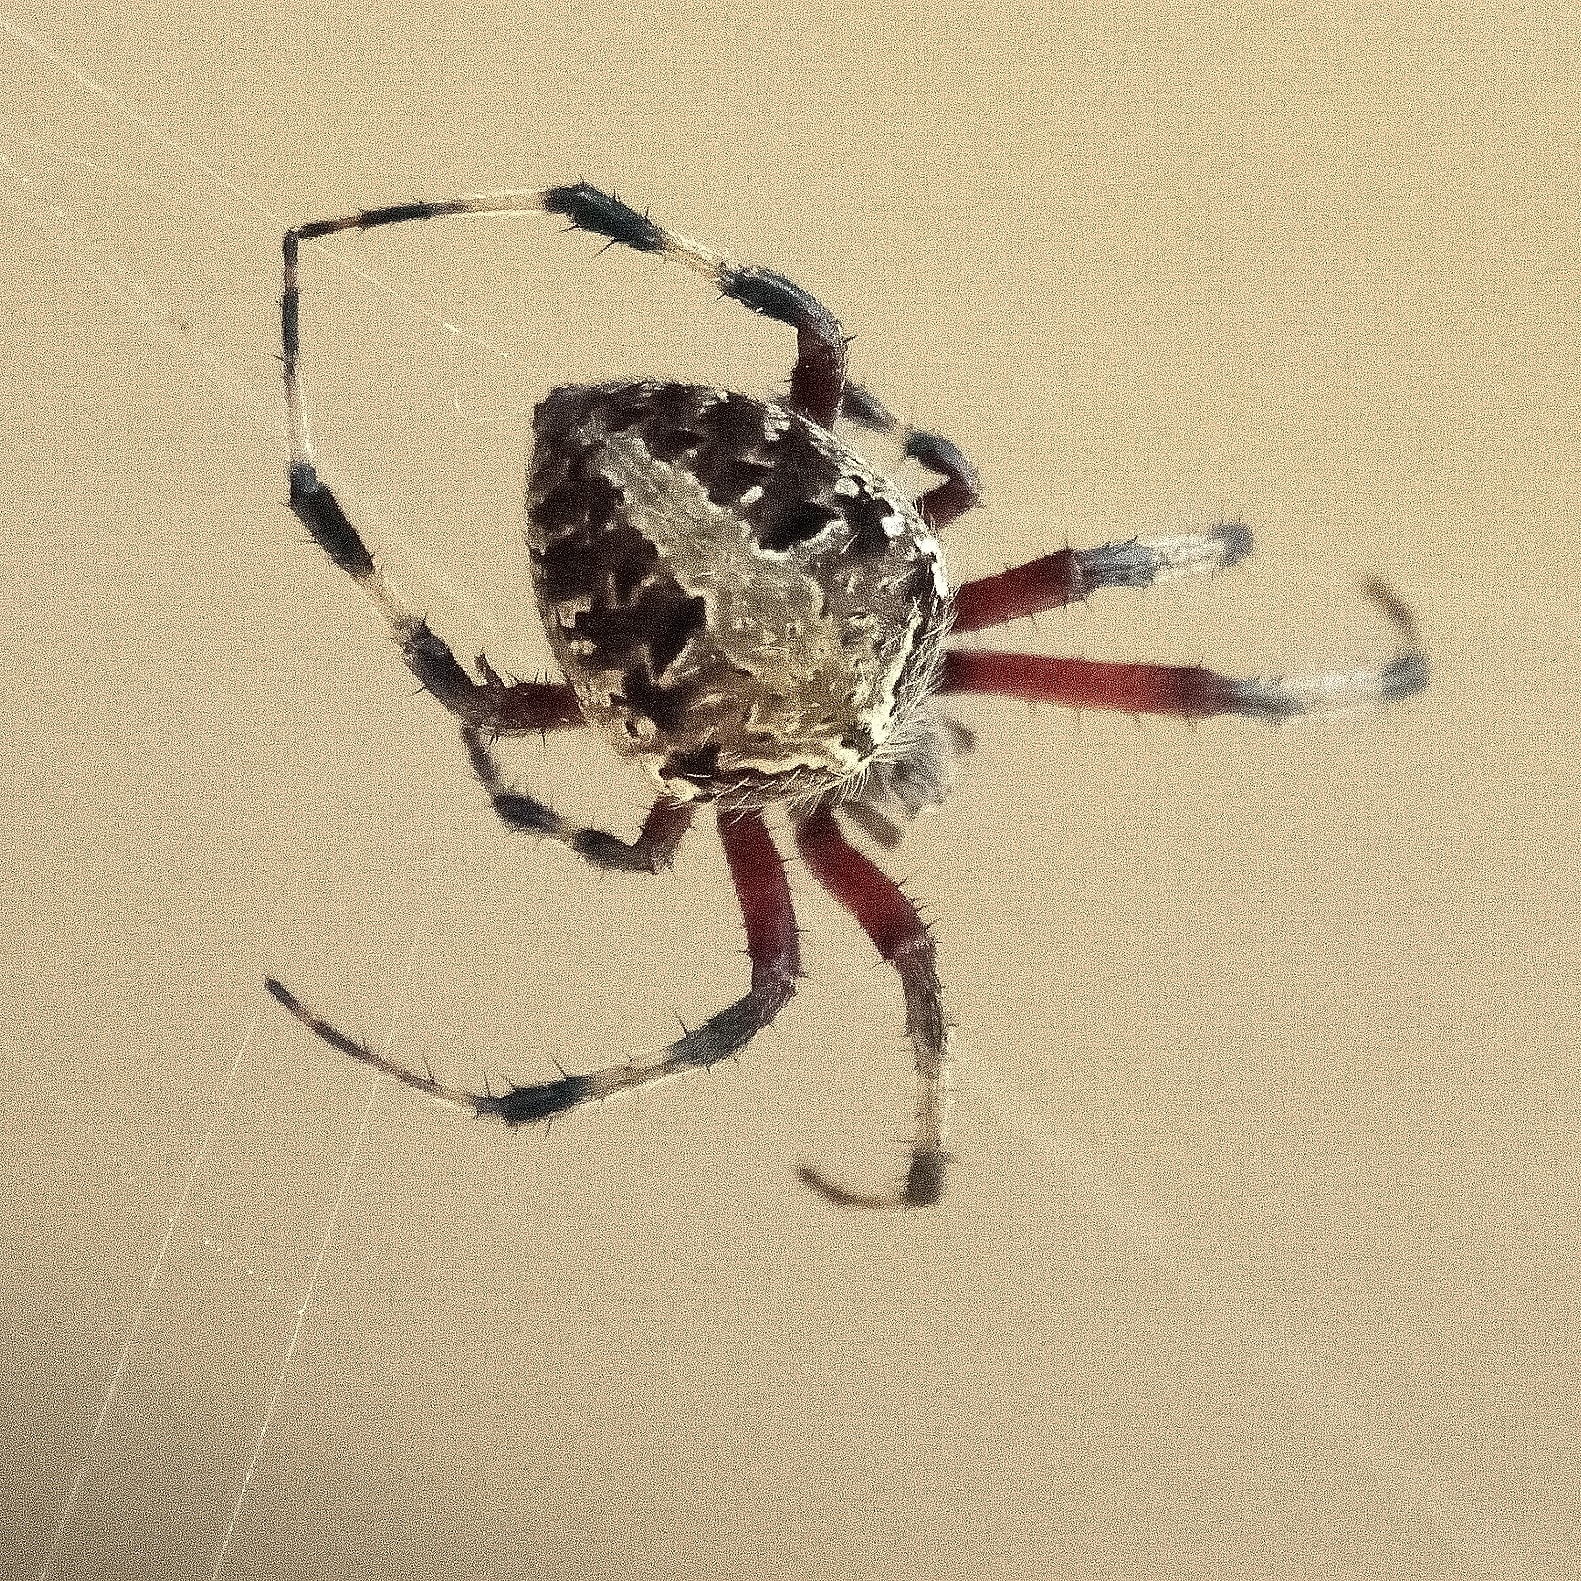 Picture of Neoscona domiciliorum (Spotted Orb-weaver) - Dorsal,Webs